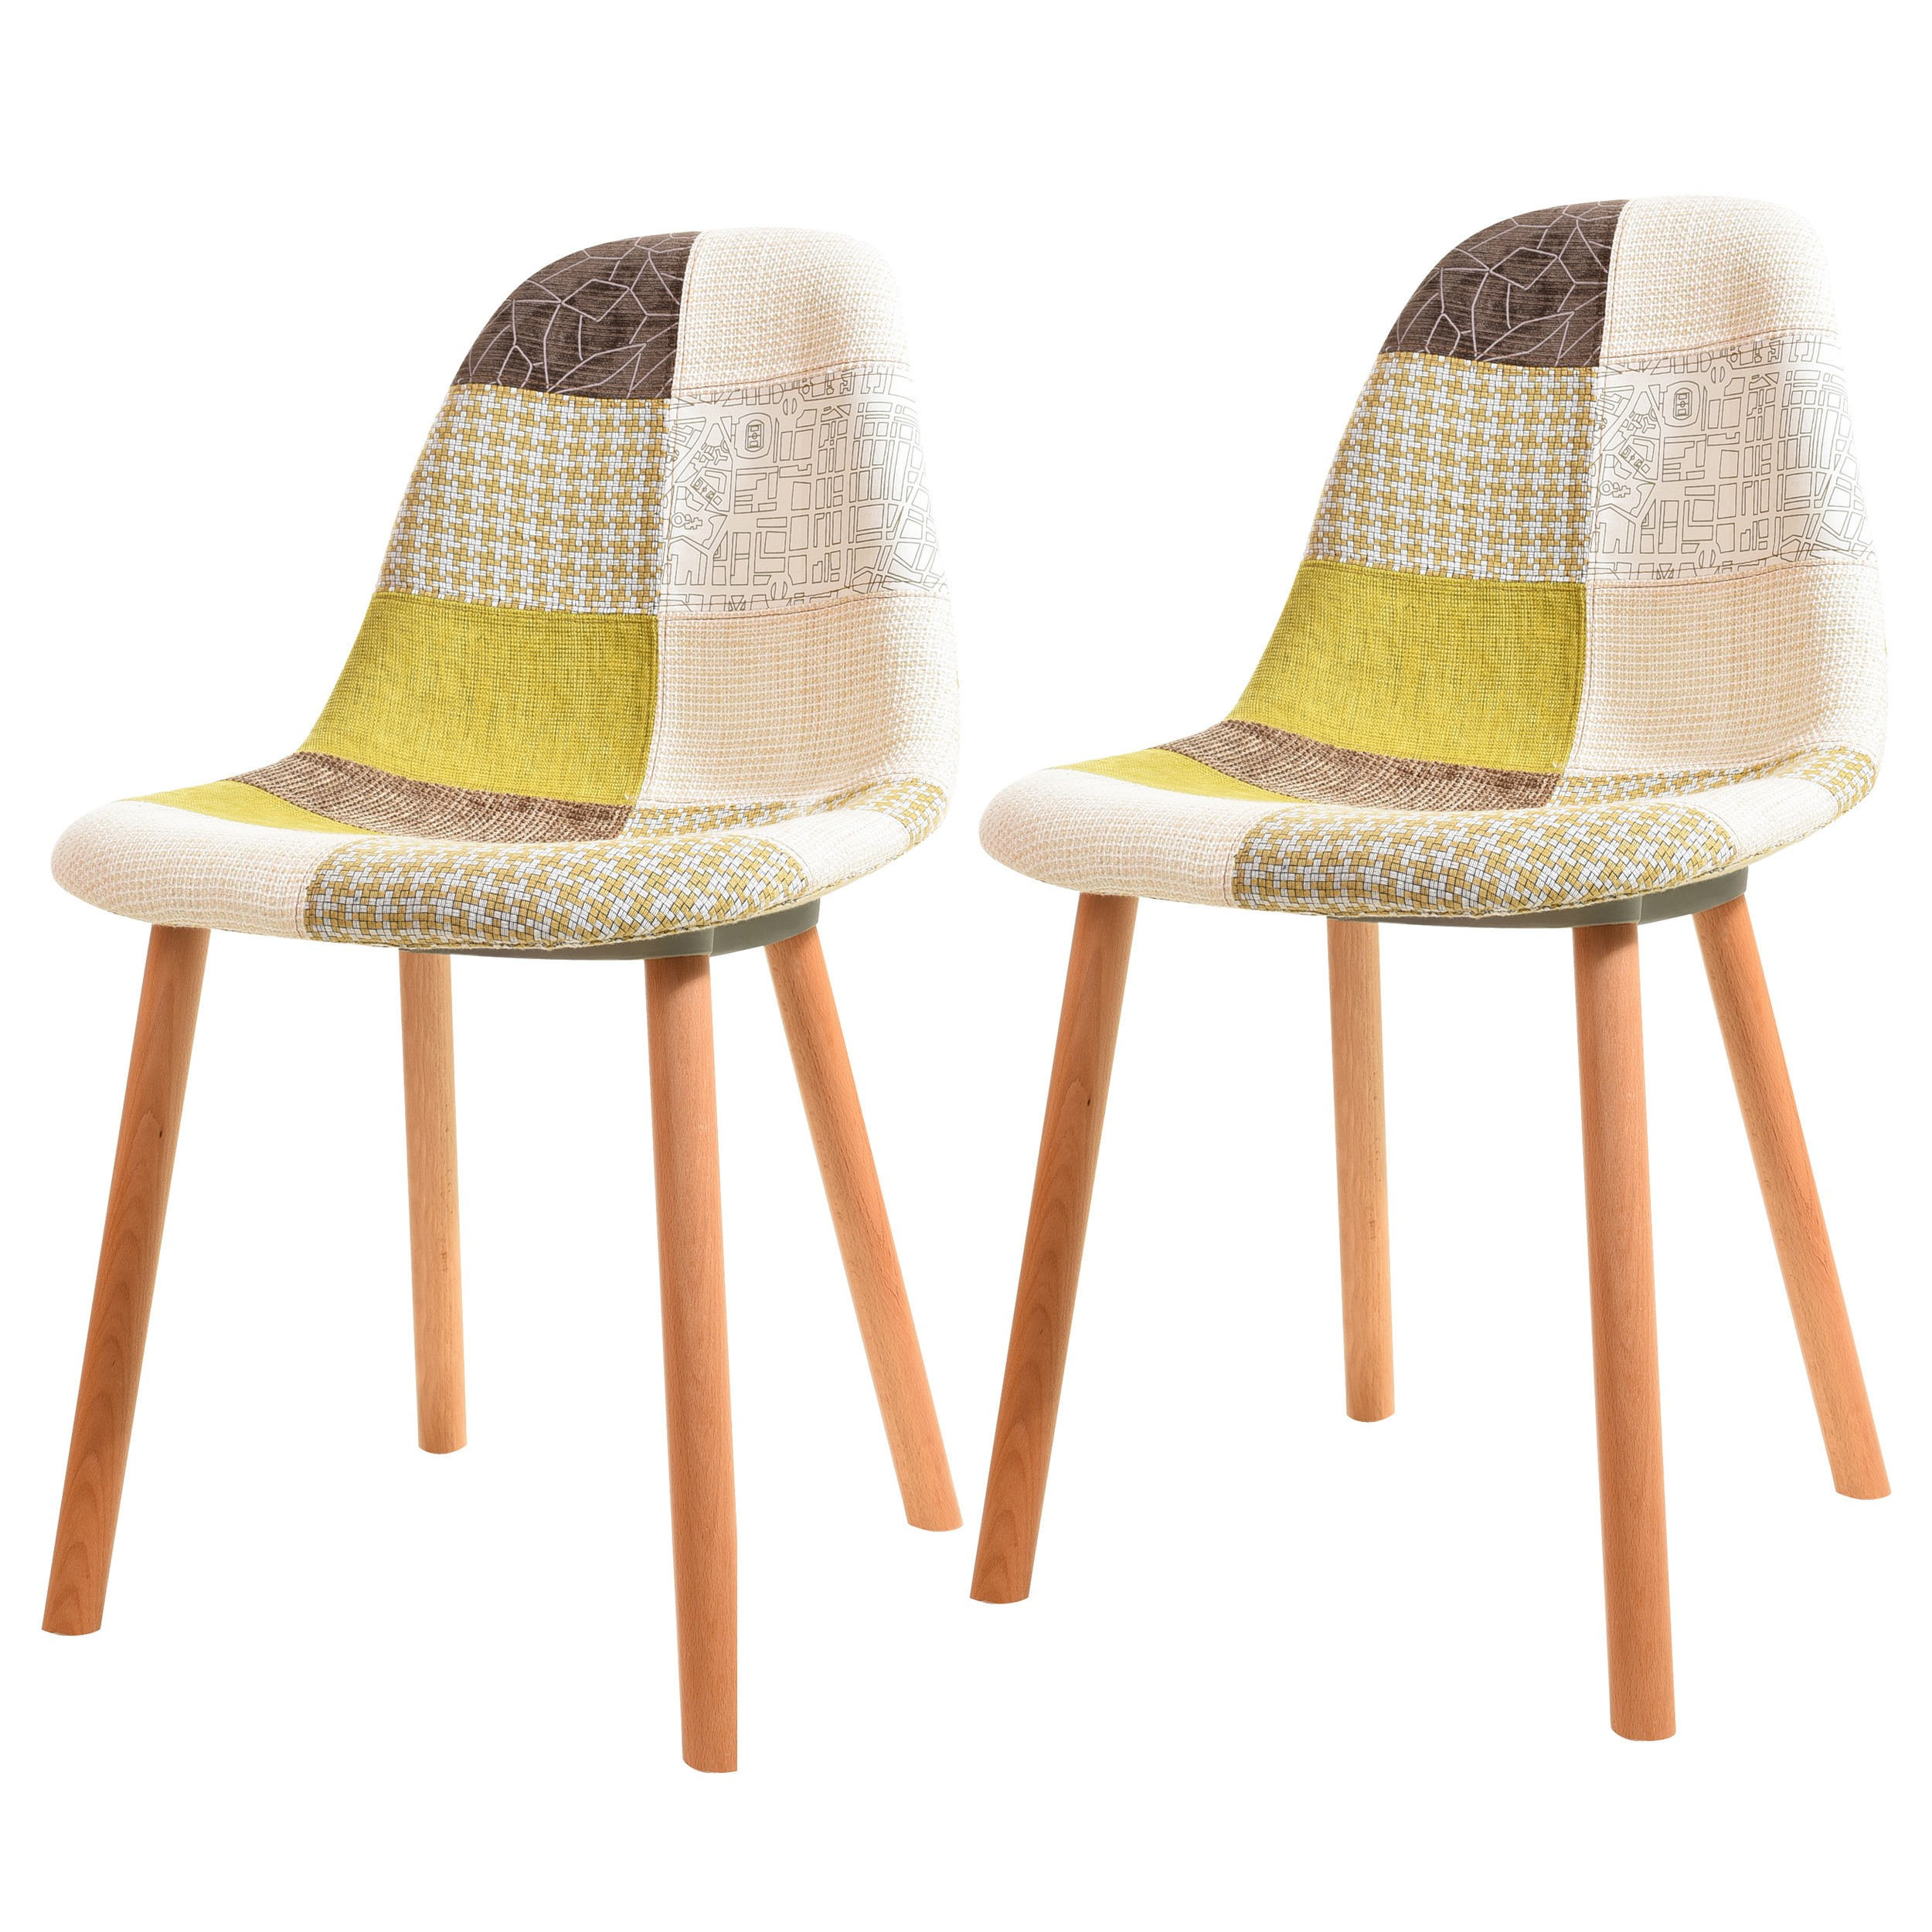 Groupon Chaises Scandinaves Chaise Scandinave Patchwork Maison Image Idée